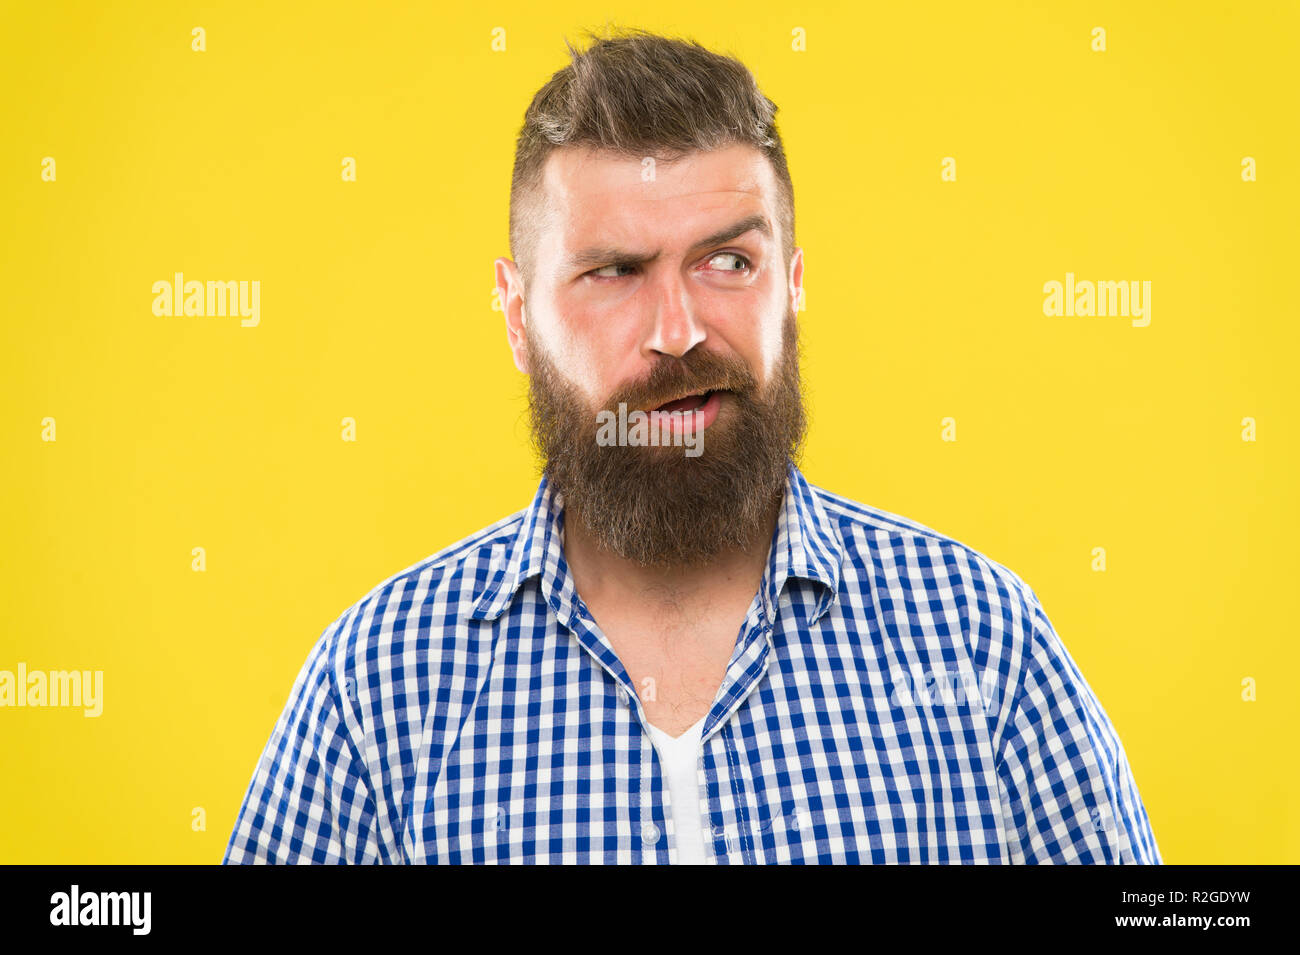 Sounds tricky. Man serious face raising eyebrow not confident. Have some doubts. Hipster bearded face not sure in something. Doubtful bearded man on yellow background close up. Doubtful expression. - Stock Image